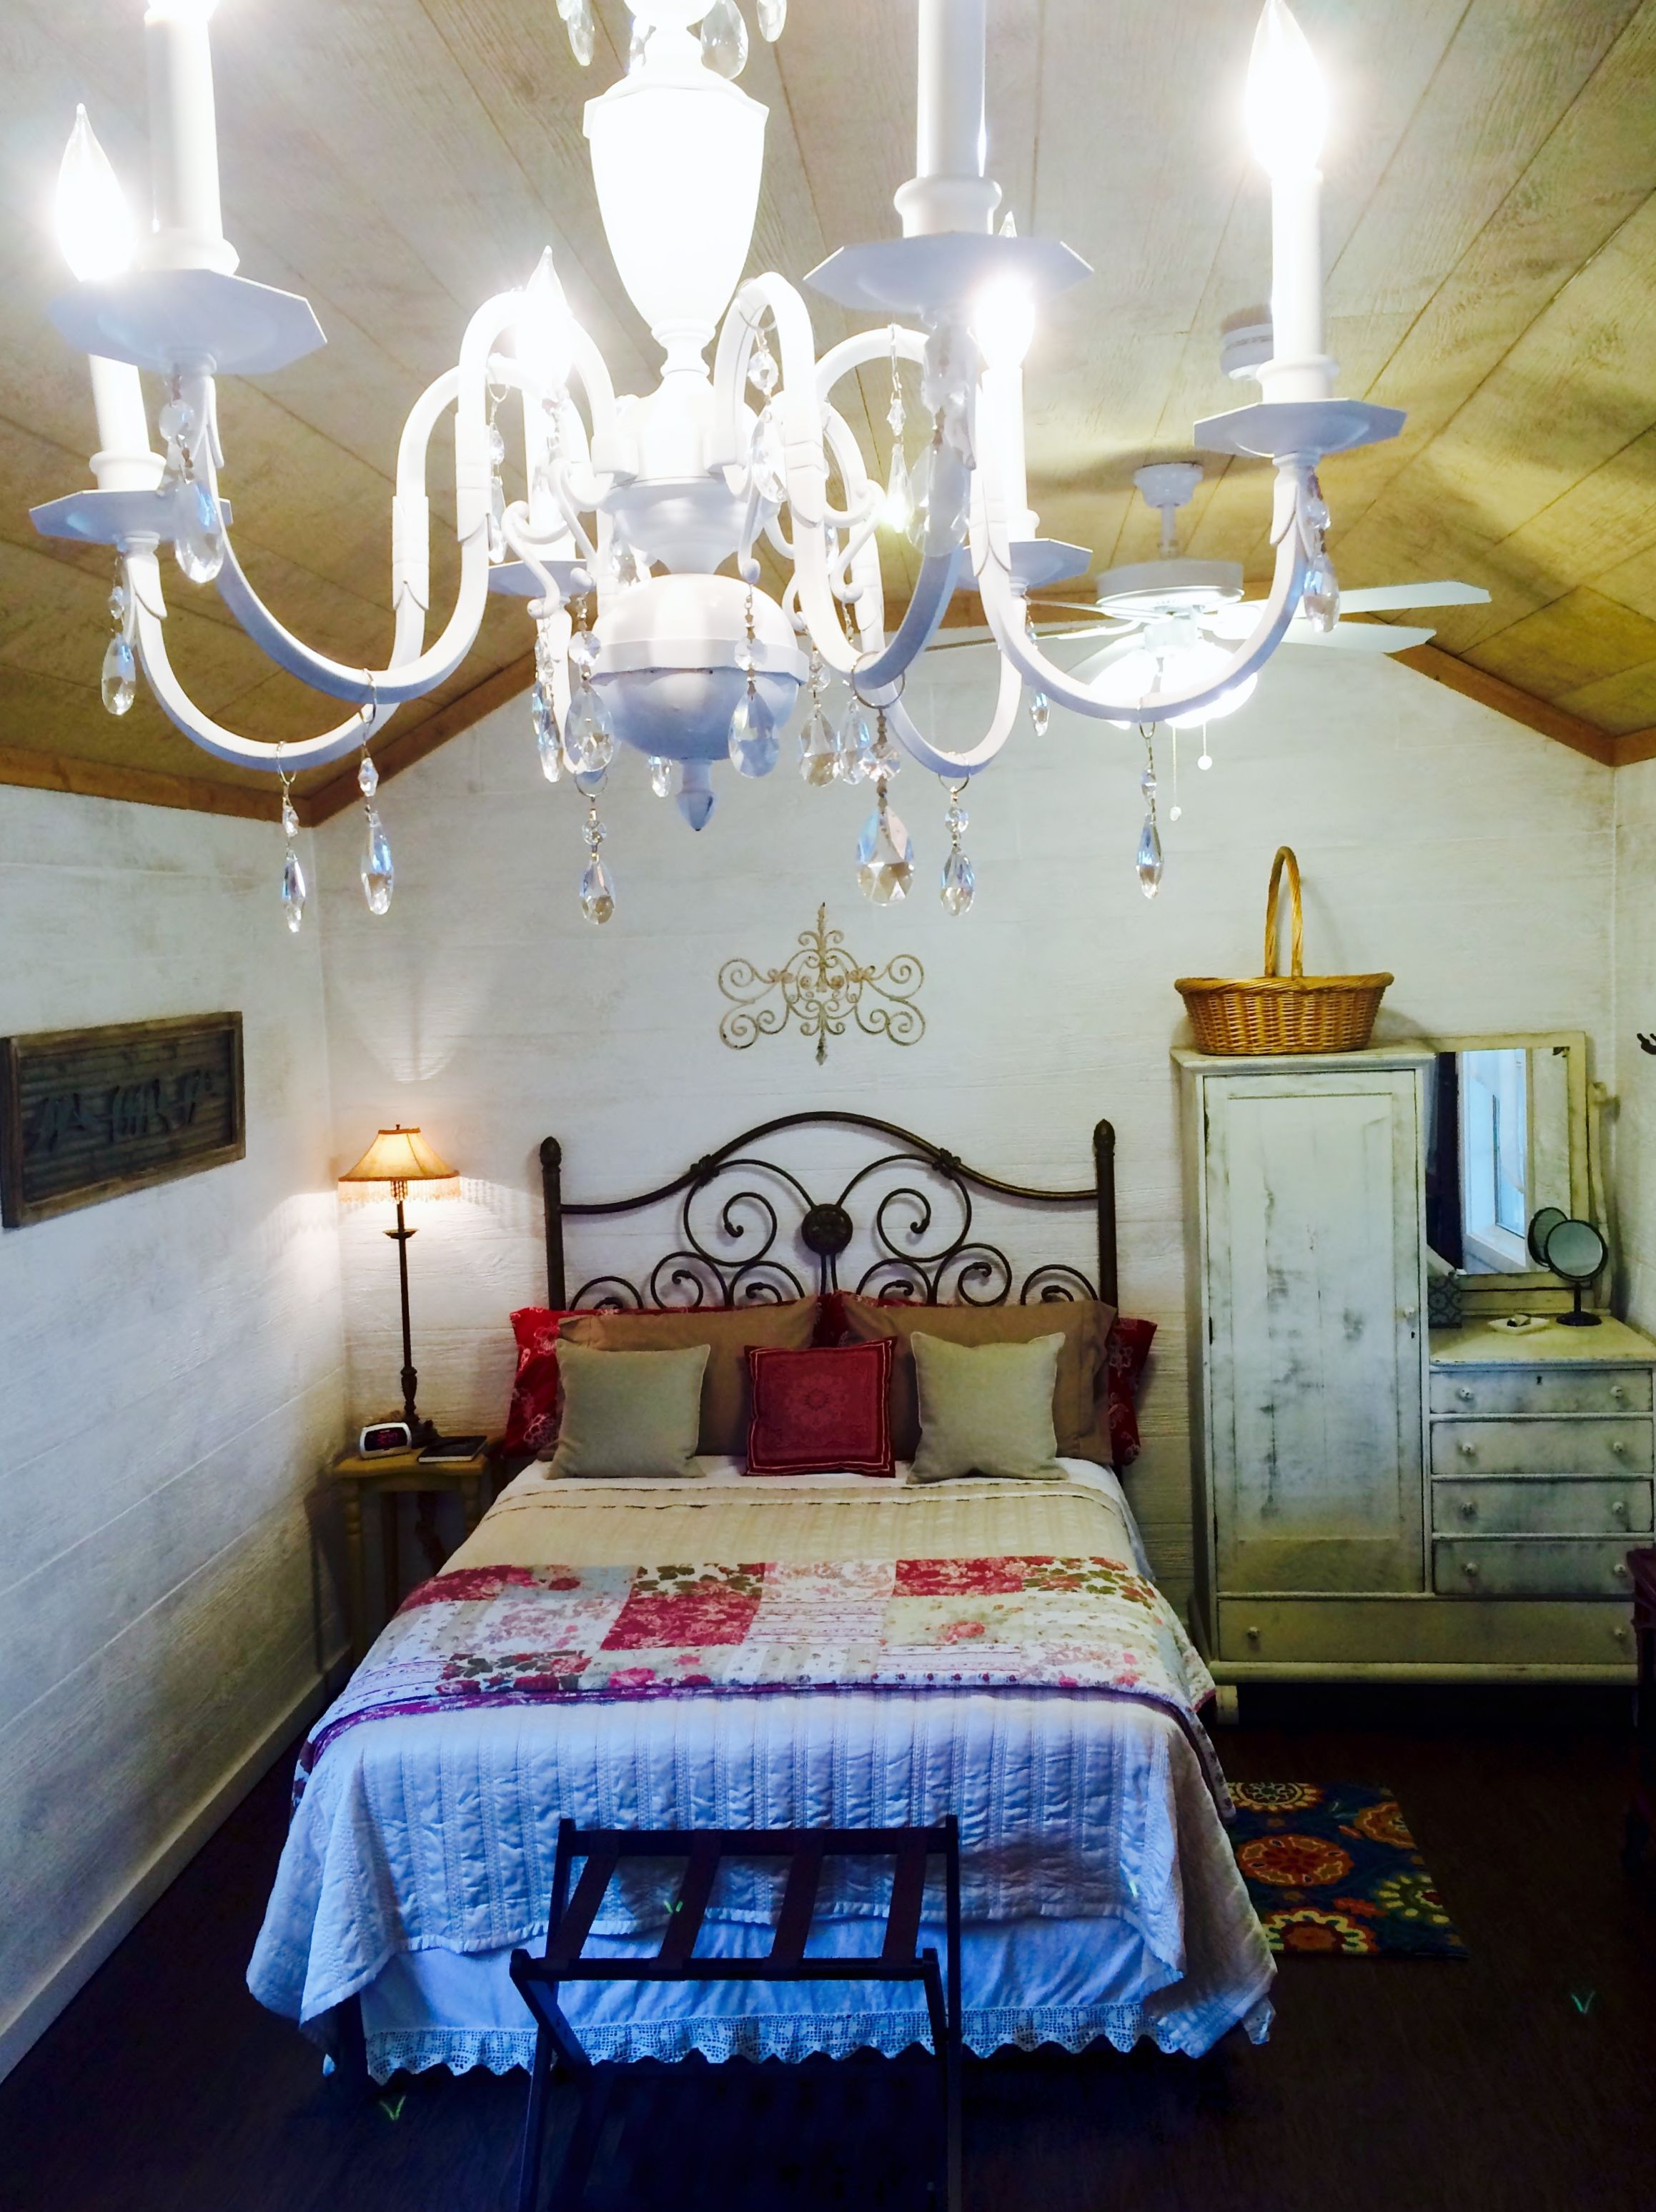 A vintage chandelier lights up this elegant little cottage with queen bed and antique chiffarobe.